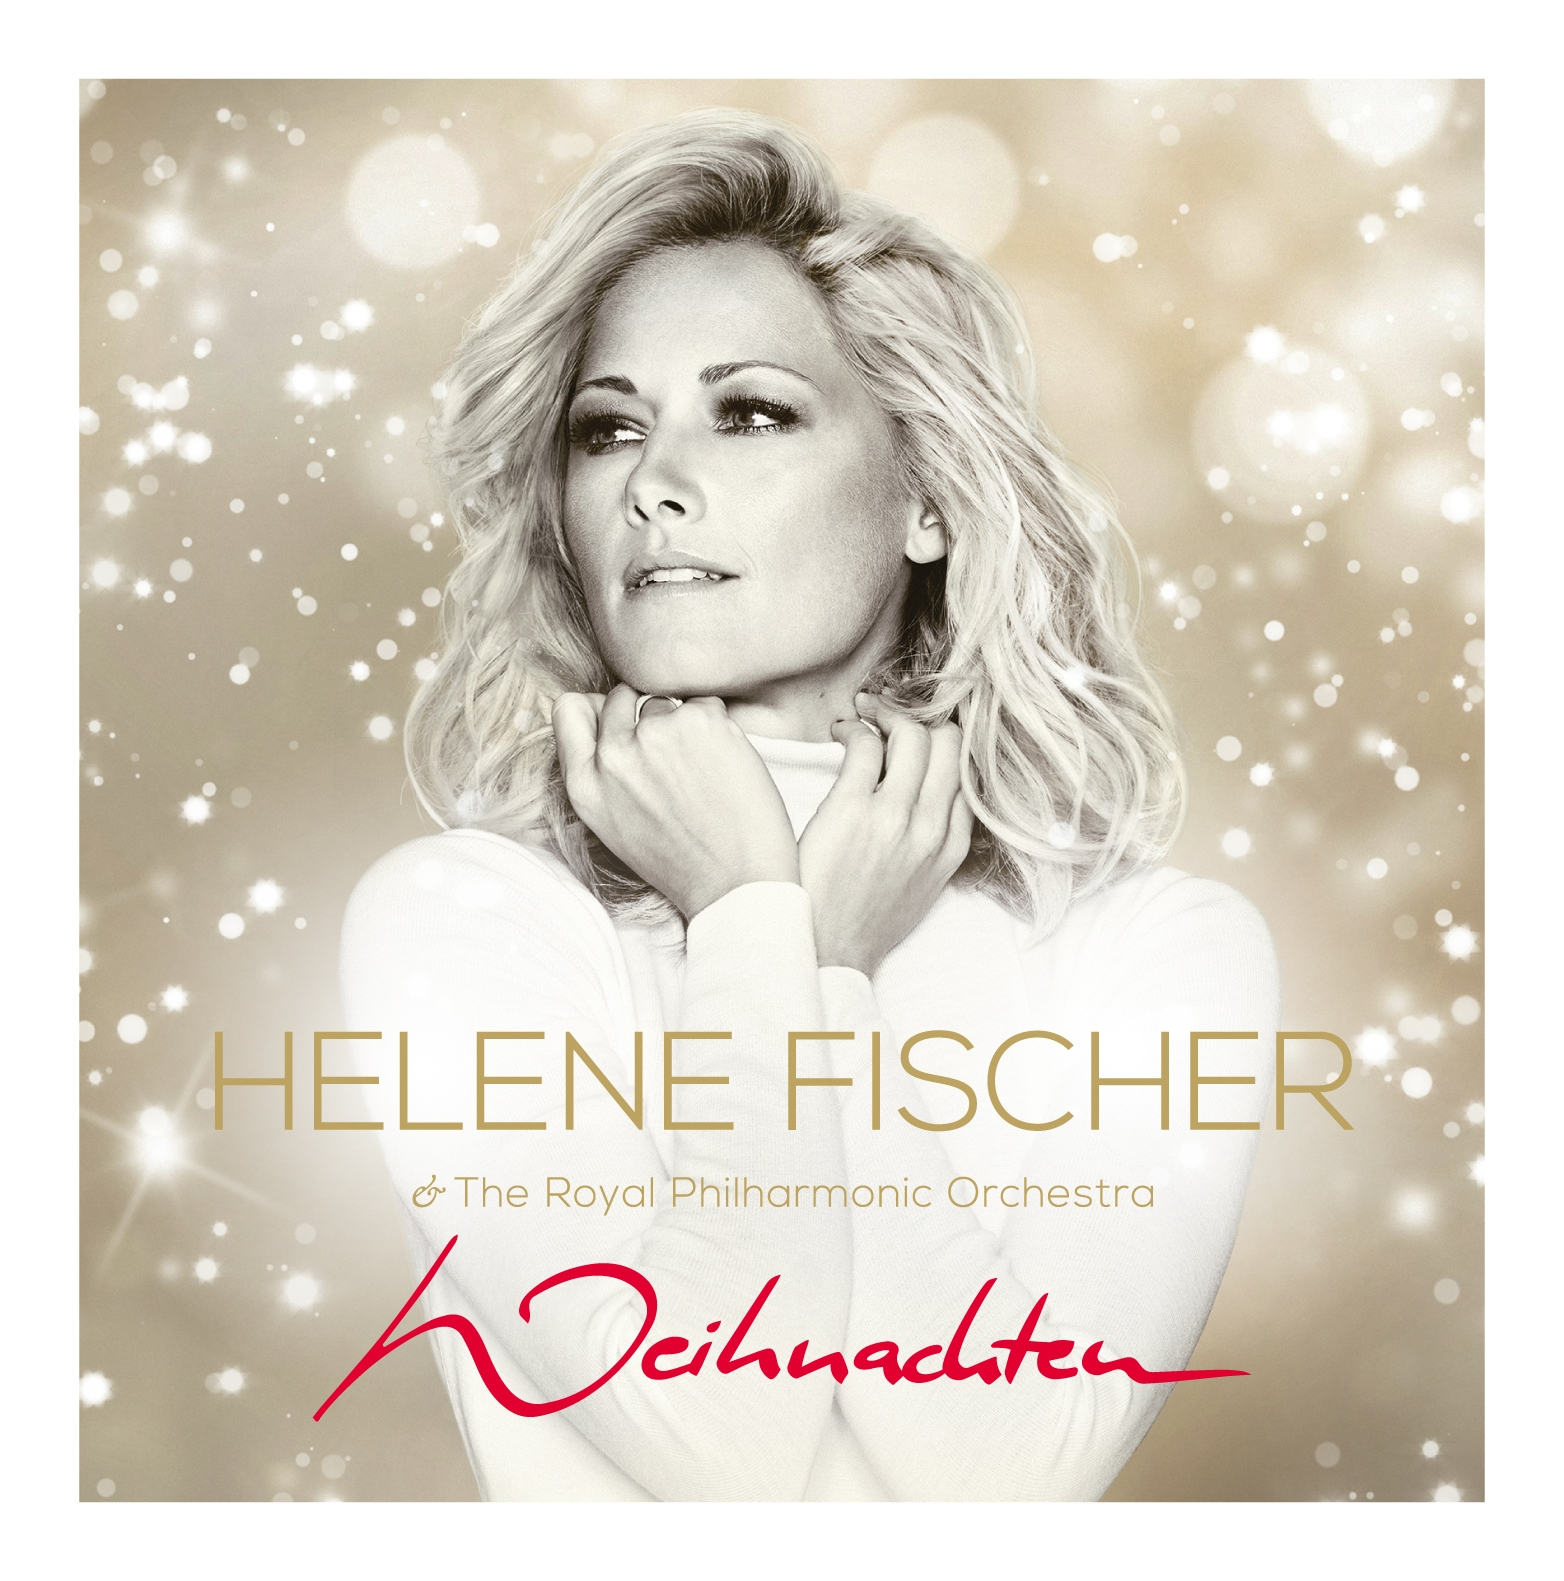 helene fischer zu weihnachten mal ganz anders. Black Bedroom Furniture Sets. Home Design Ideas